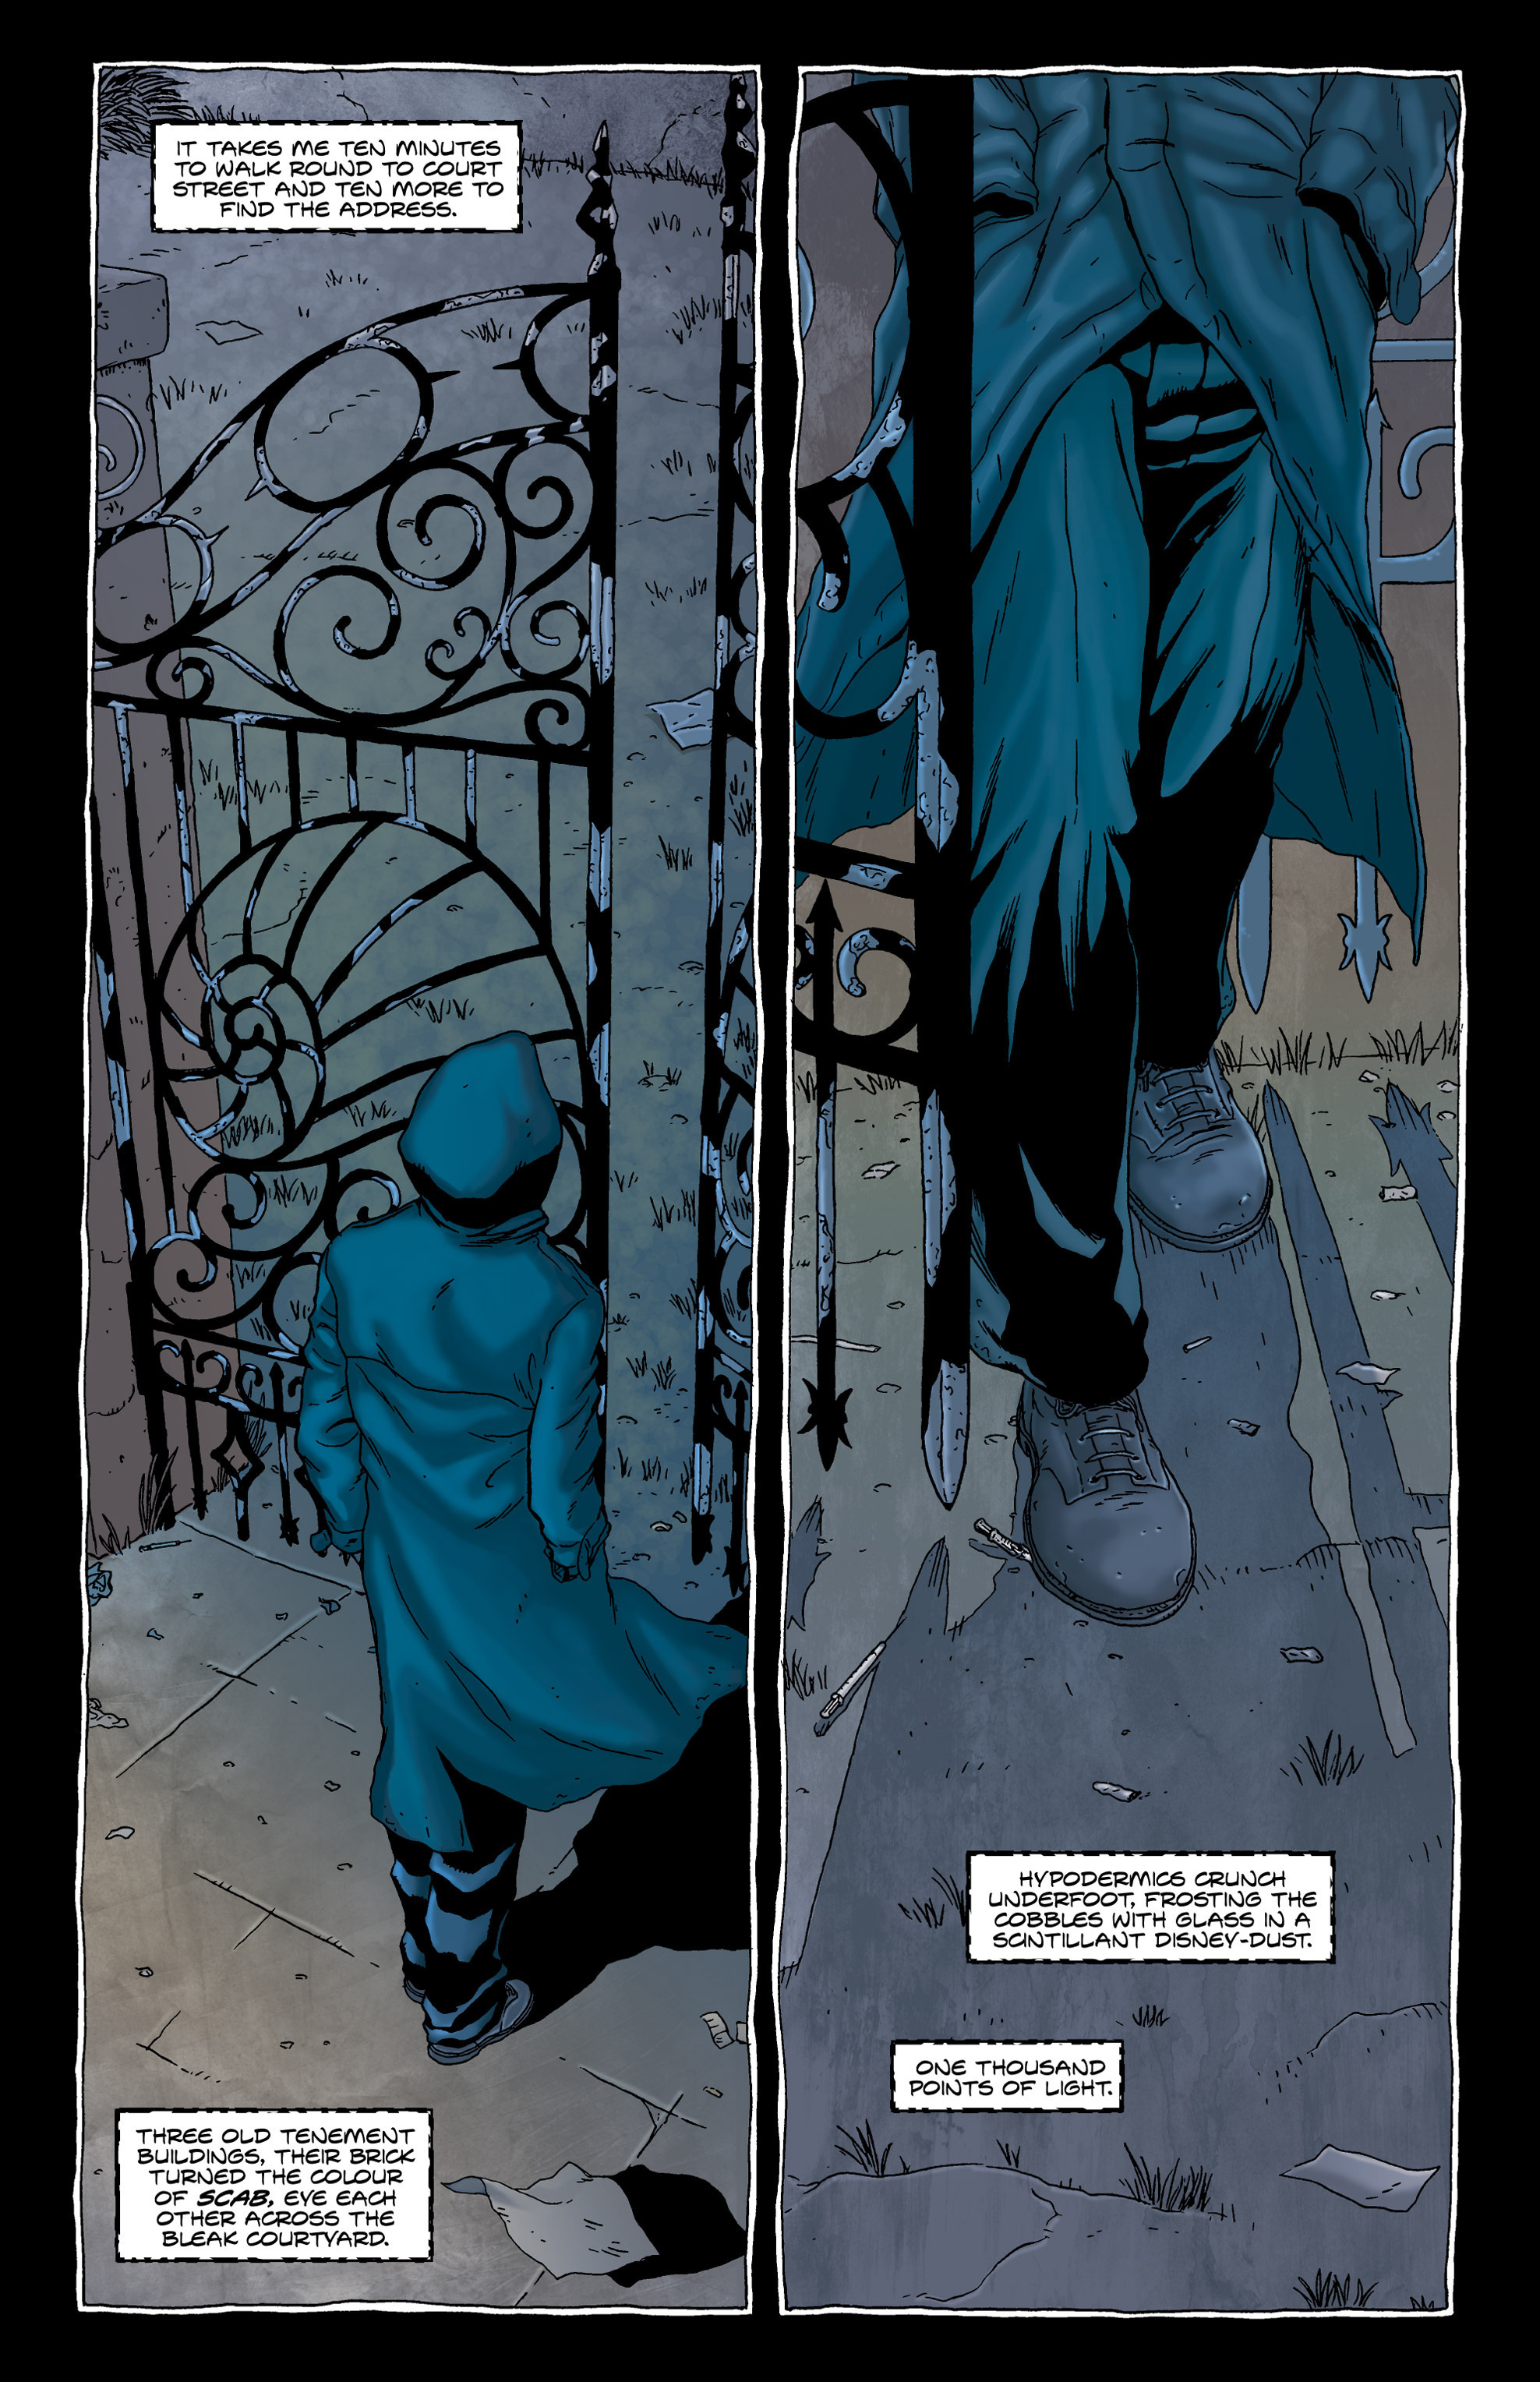 Read online Alan Moore's The Courtyard comic -  Issue # TPB - 32